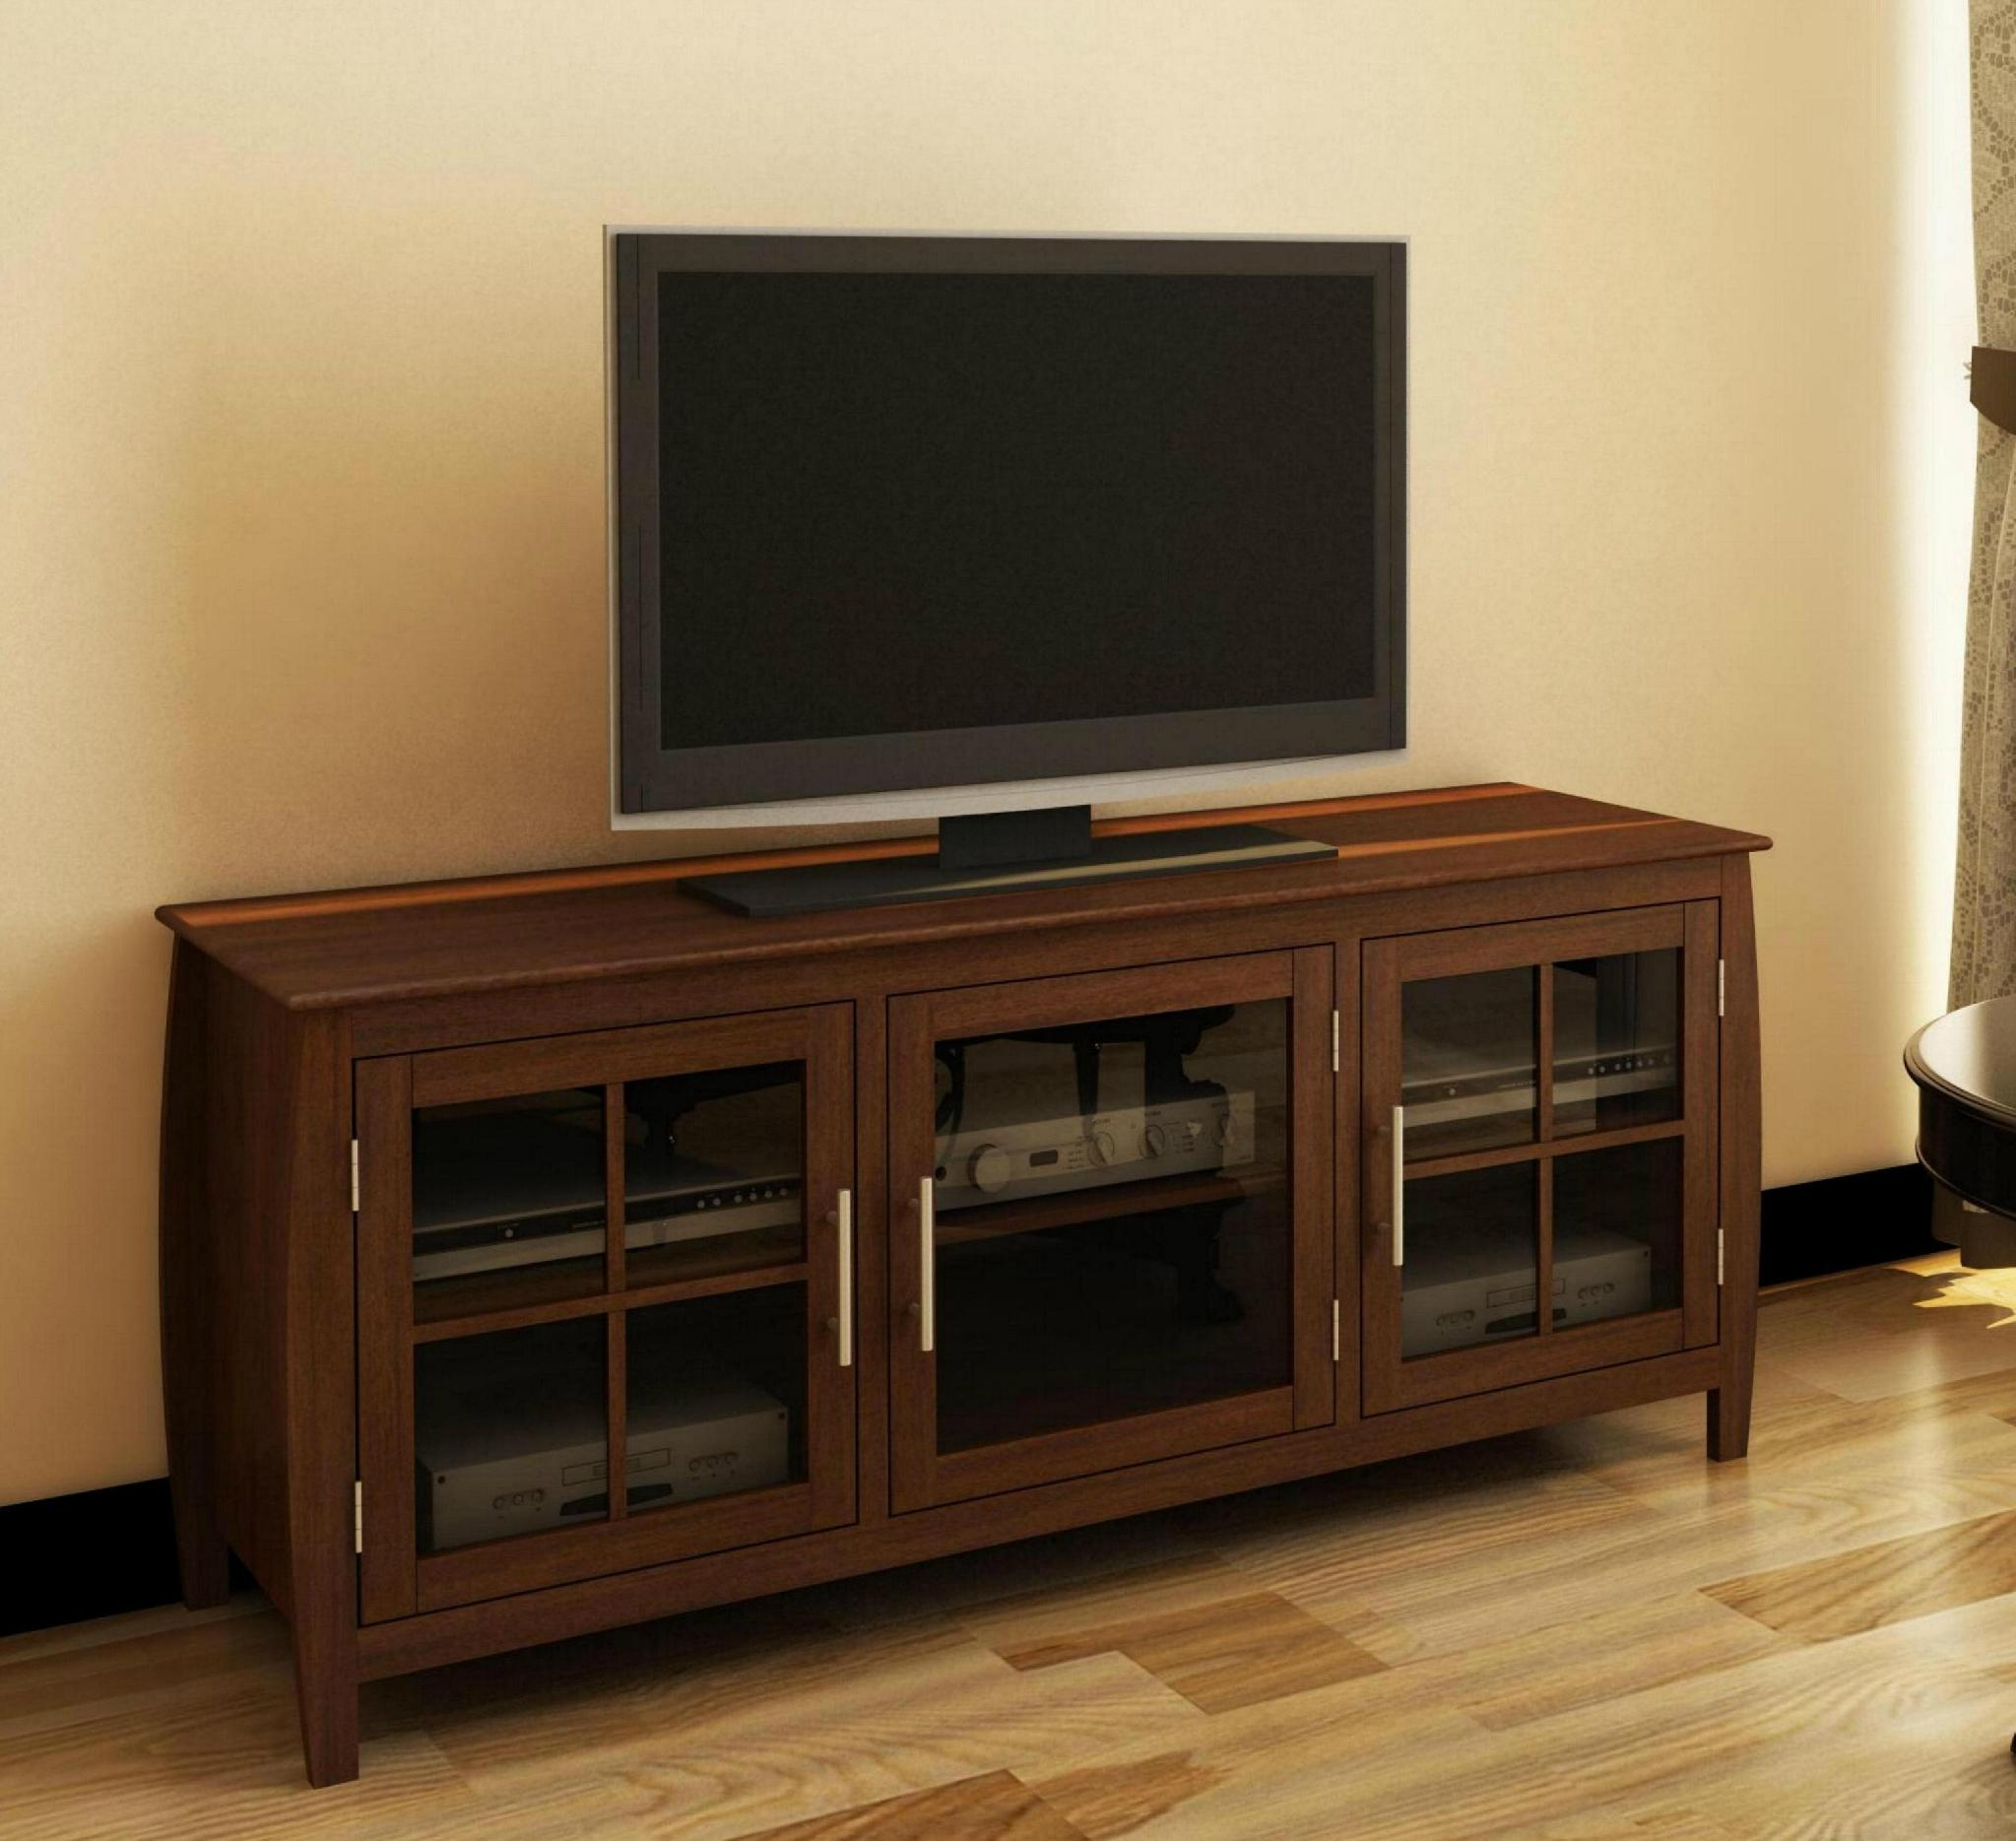 Genial ... 60 Inch Two Mullion Glass Doors Modern TV Cabinets AV Cabinets 2 ...